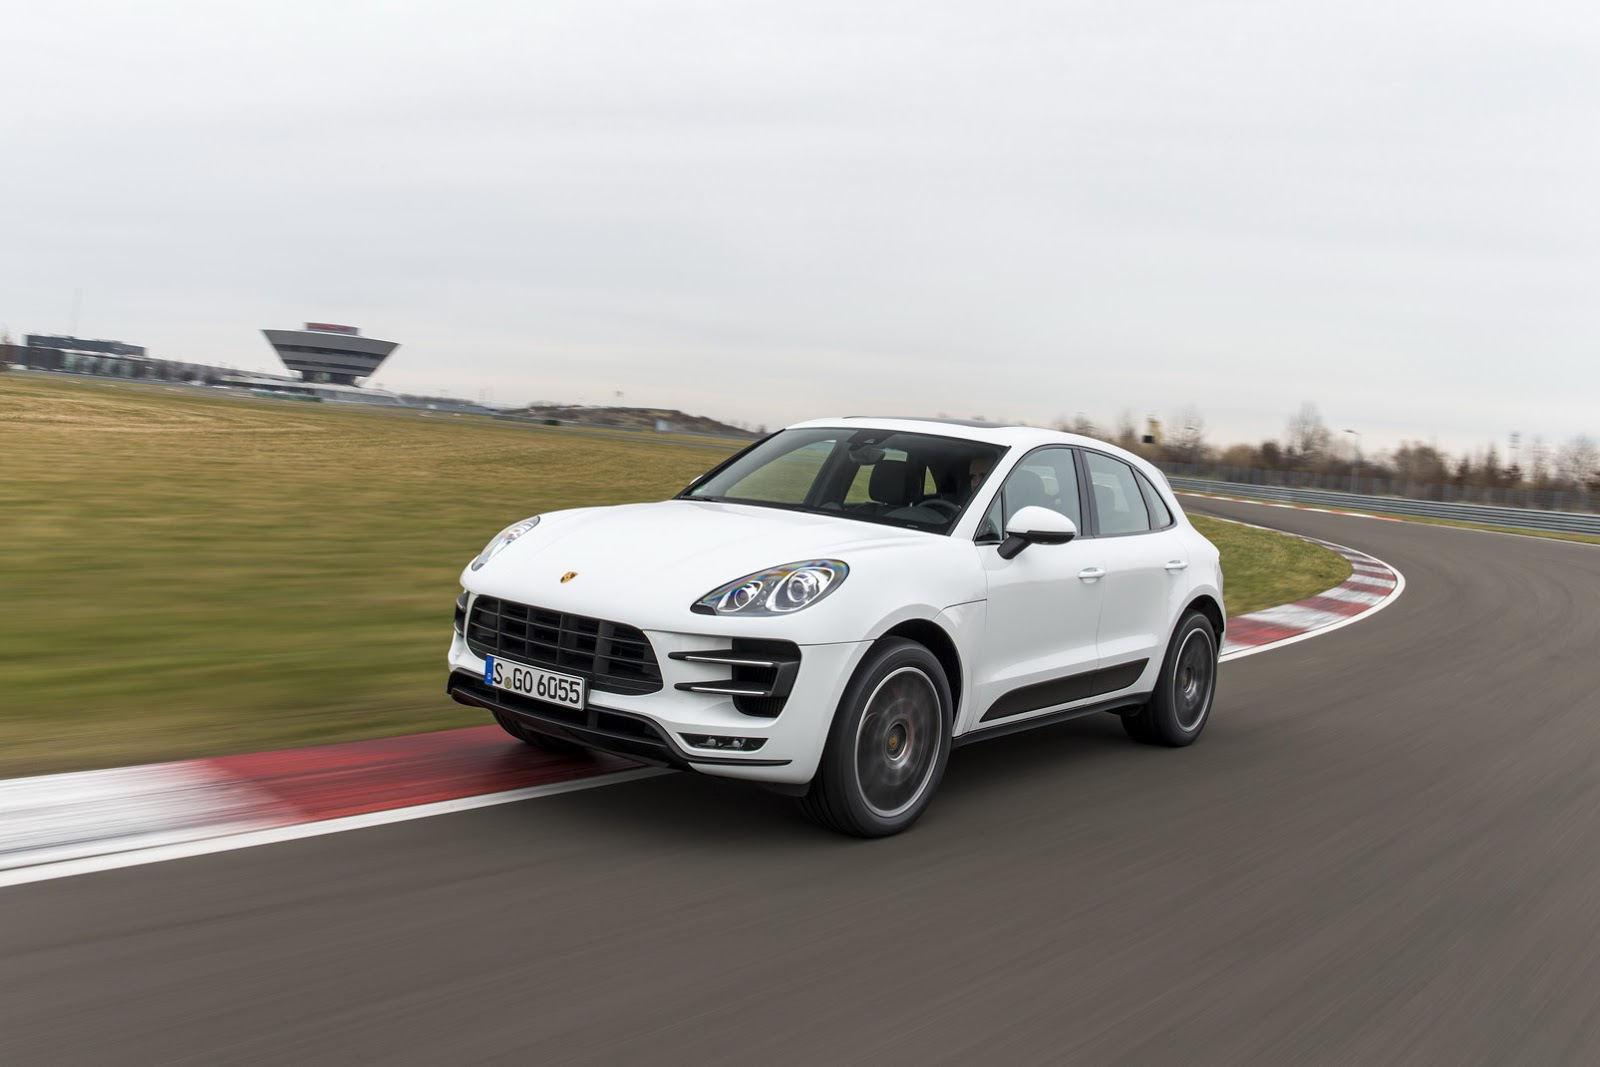 Porsche issues precautionary worldwide recall of macan s and turbo